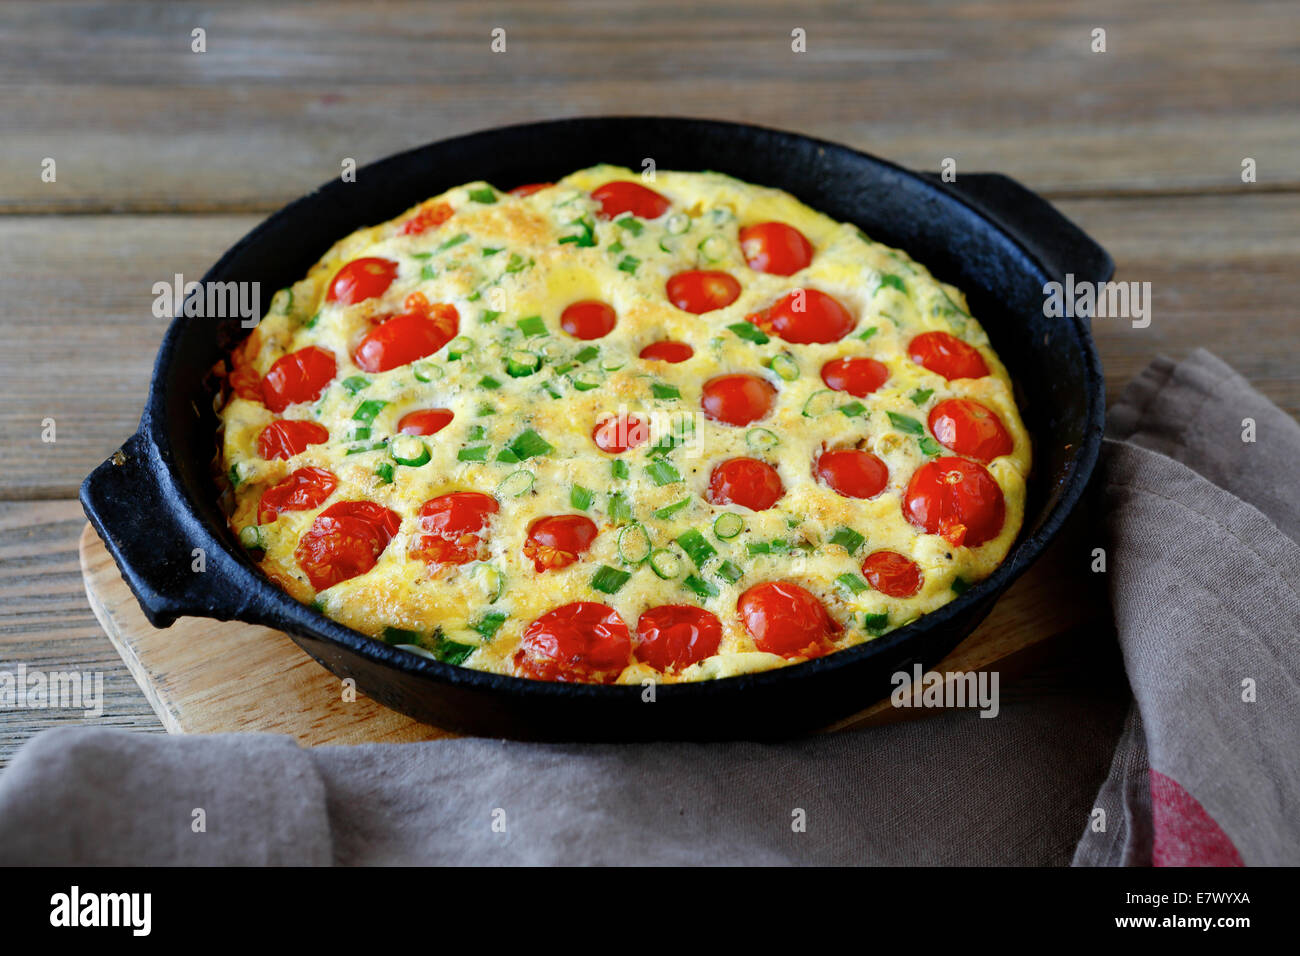 Frittata with Tomatoes, food closeup - Stock Image